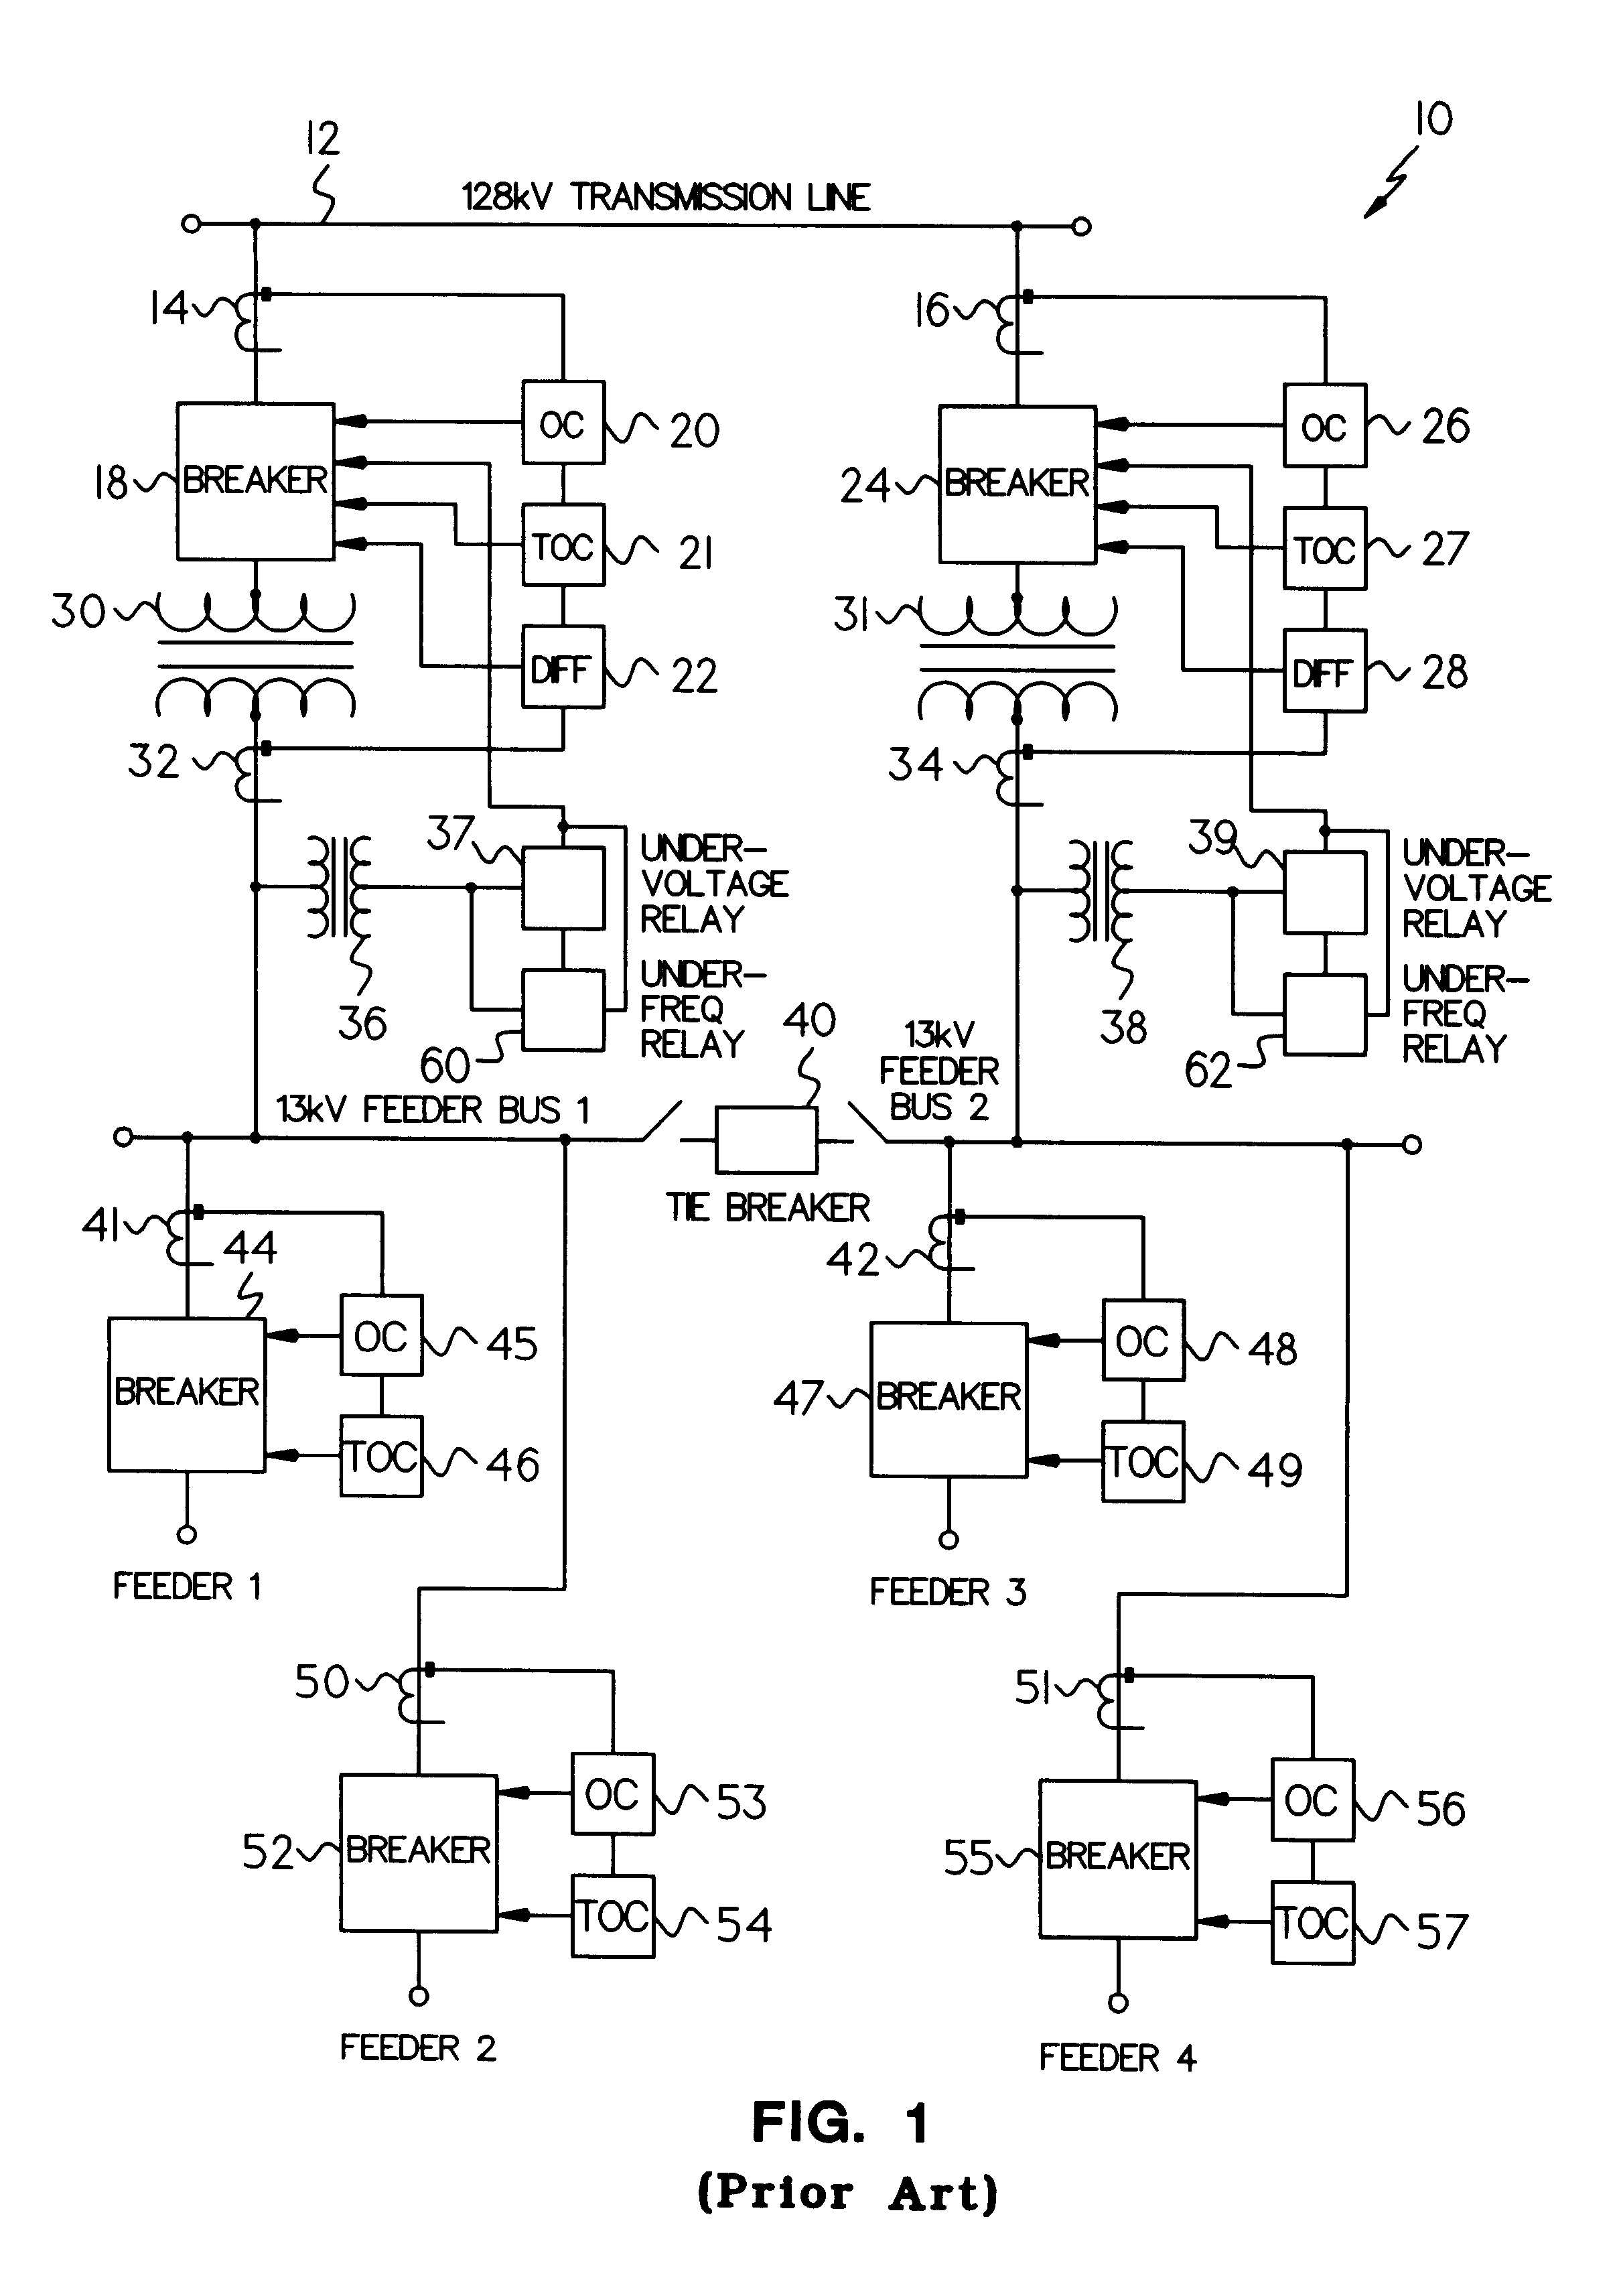 Patent US Distributed Monitoring And Protection System - Alstom electromagnetic relay catalogue